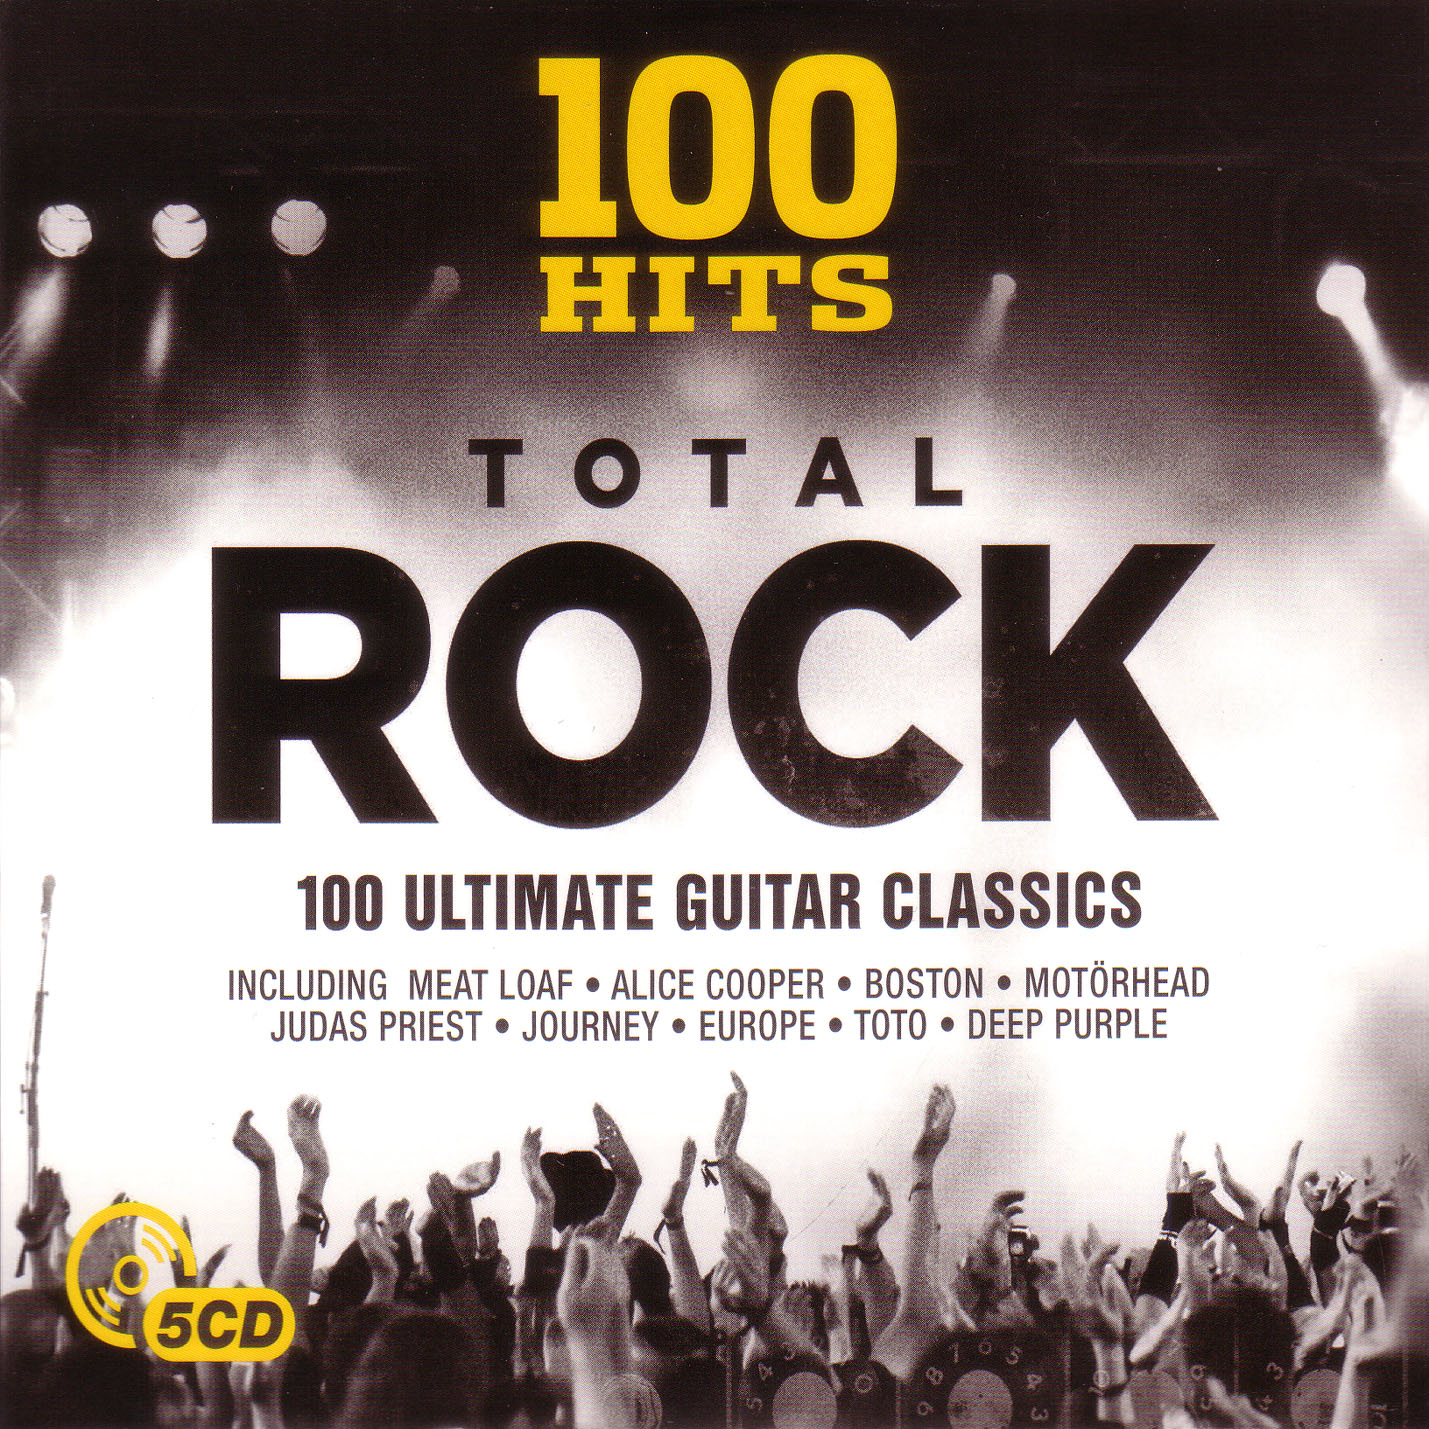 Download [Mp3]-[Album All Hit] 100 Hits Total Rock – 100 Ulitmate Guitar Classics 4shared By Pleng-mun.com